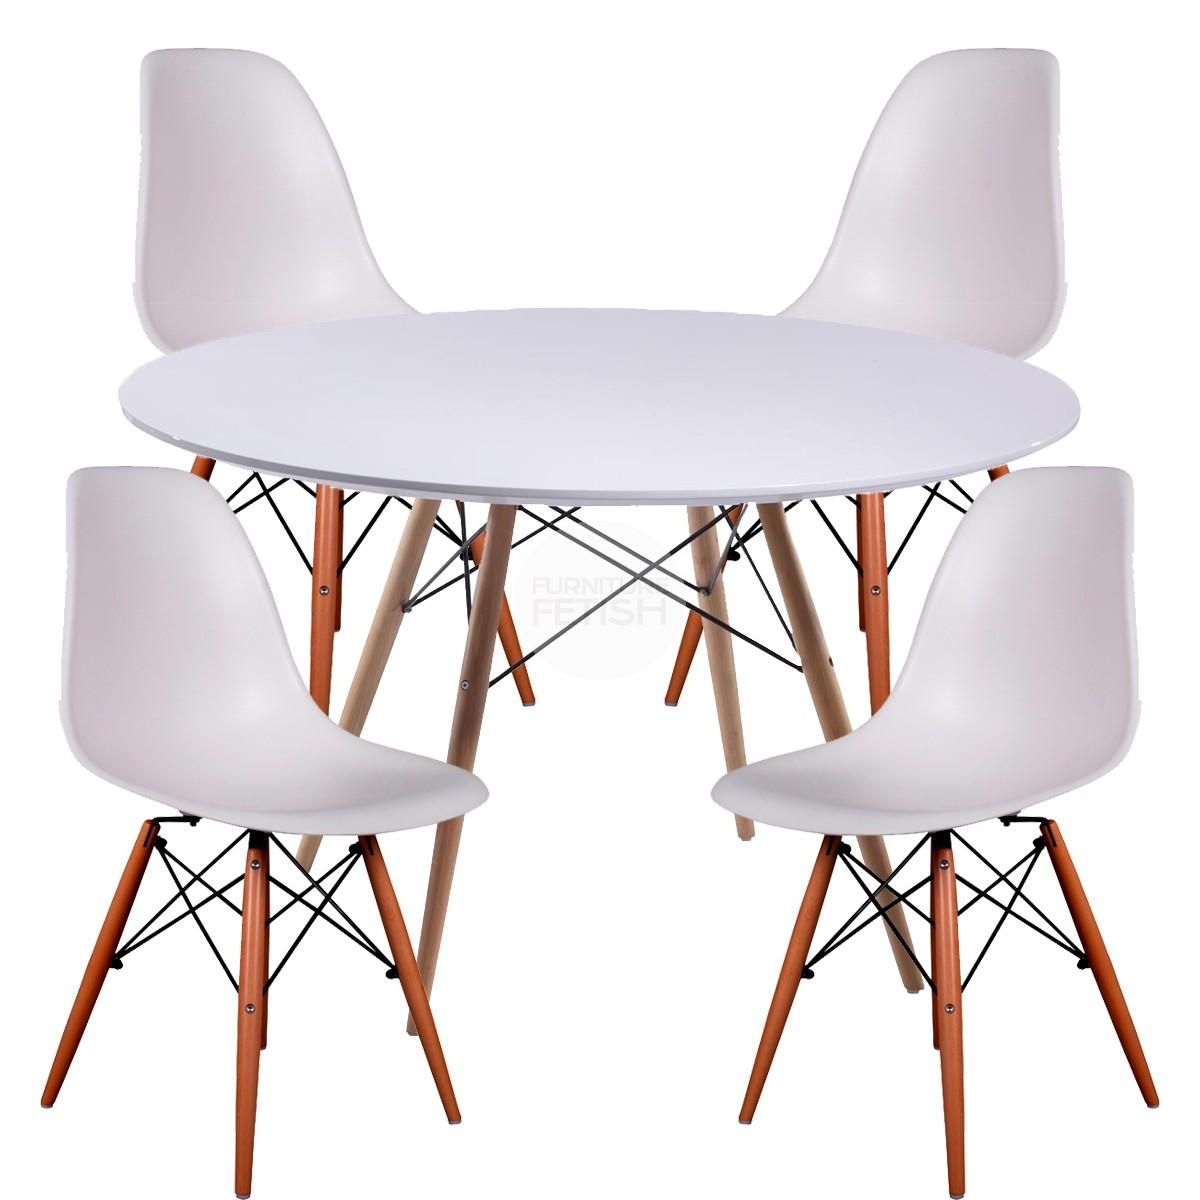 Vitra classic Eames Plastic Side Chair DSW by Ray & Charles Eames 2